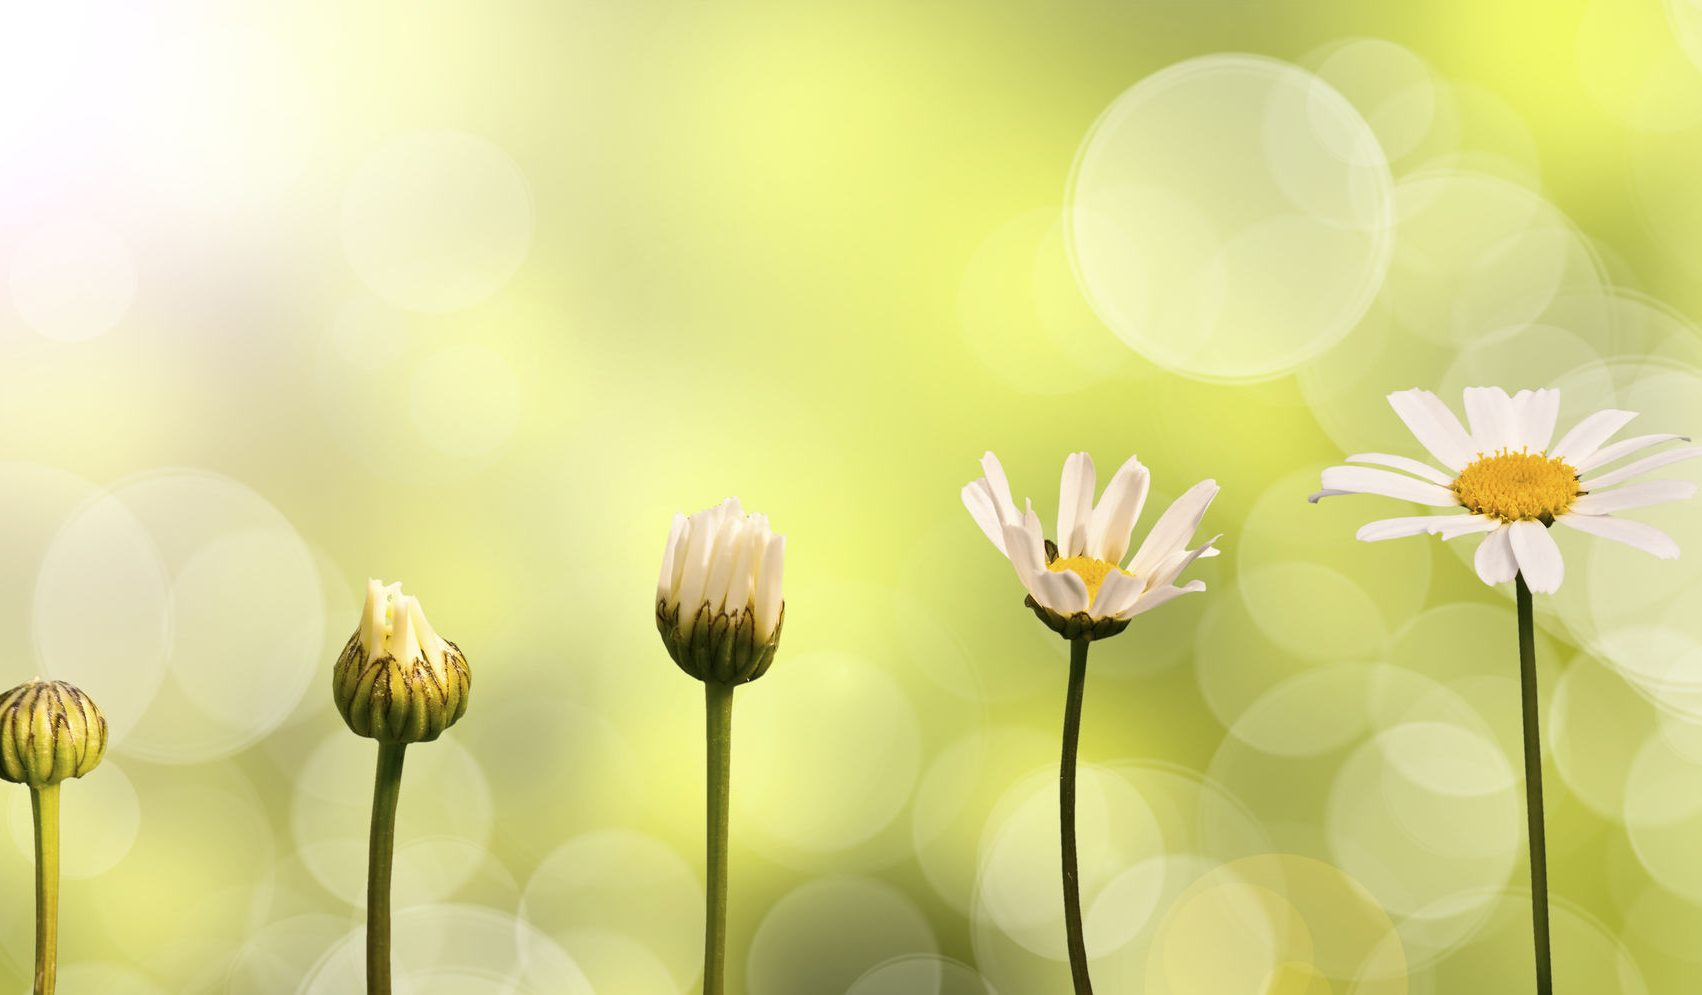 36224447 - daisies on green nature background, stages of growth